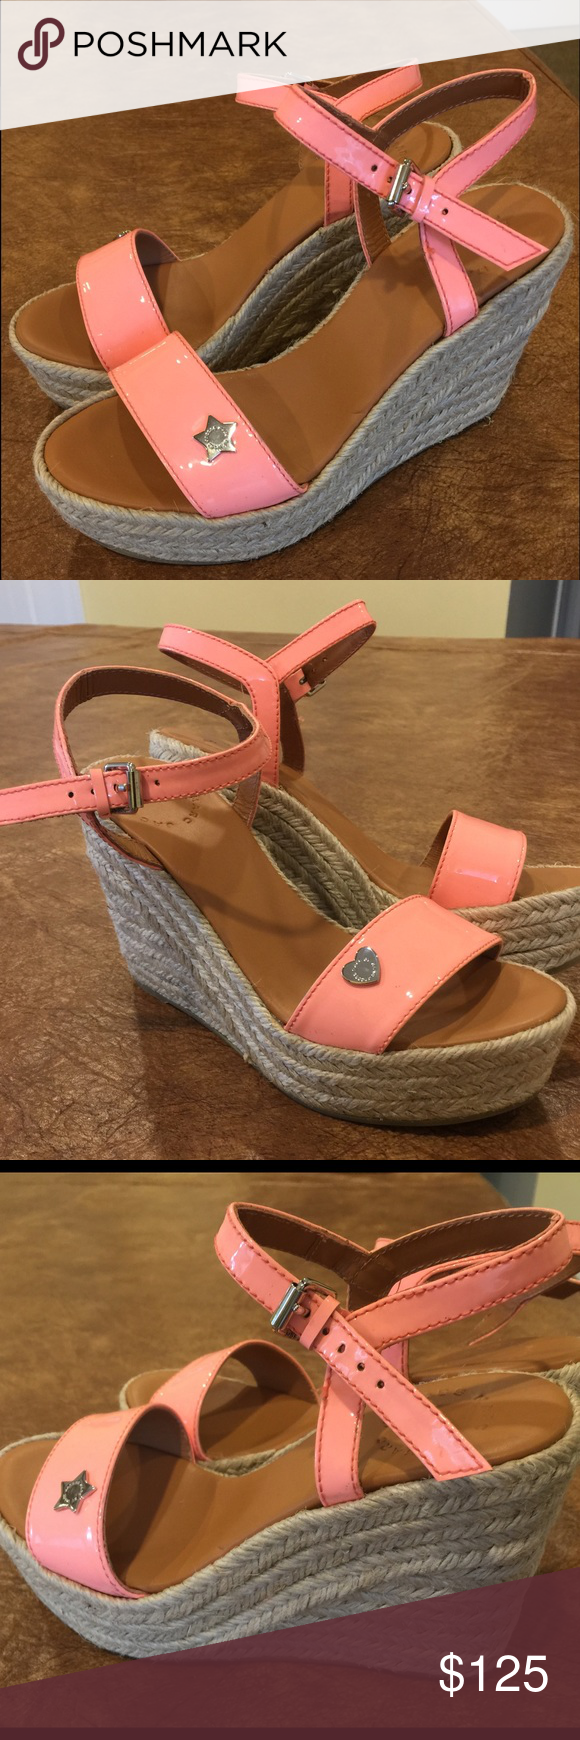 Marc By: Marc Jacob, Hearts & Stars Pink Wedges! Marc By: Marc Jacob, Hearts & Stars Pink Wedges! Size: 36 (6) NWOT!, Show Stoppers! Beautiful Pink Wedges, Hearts & Stars Embellishment! Super Comfy! (No Box) Any Questions please Comment! Marc by Marc Jacobs Shoes Espadrilles